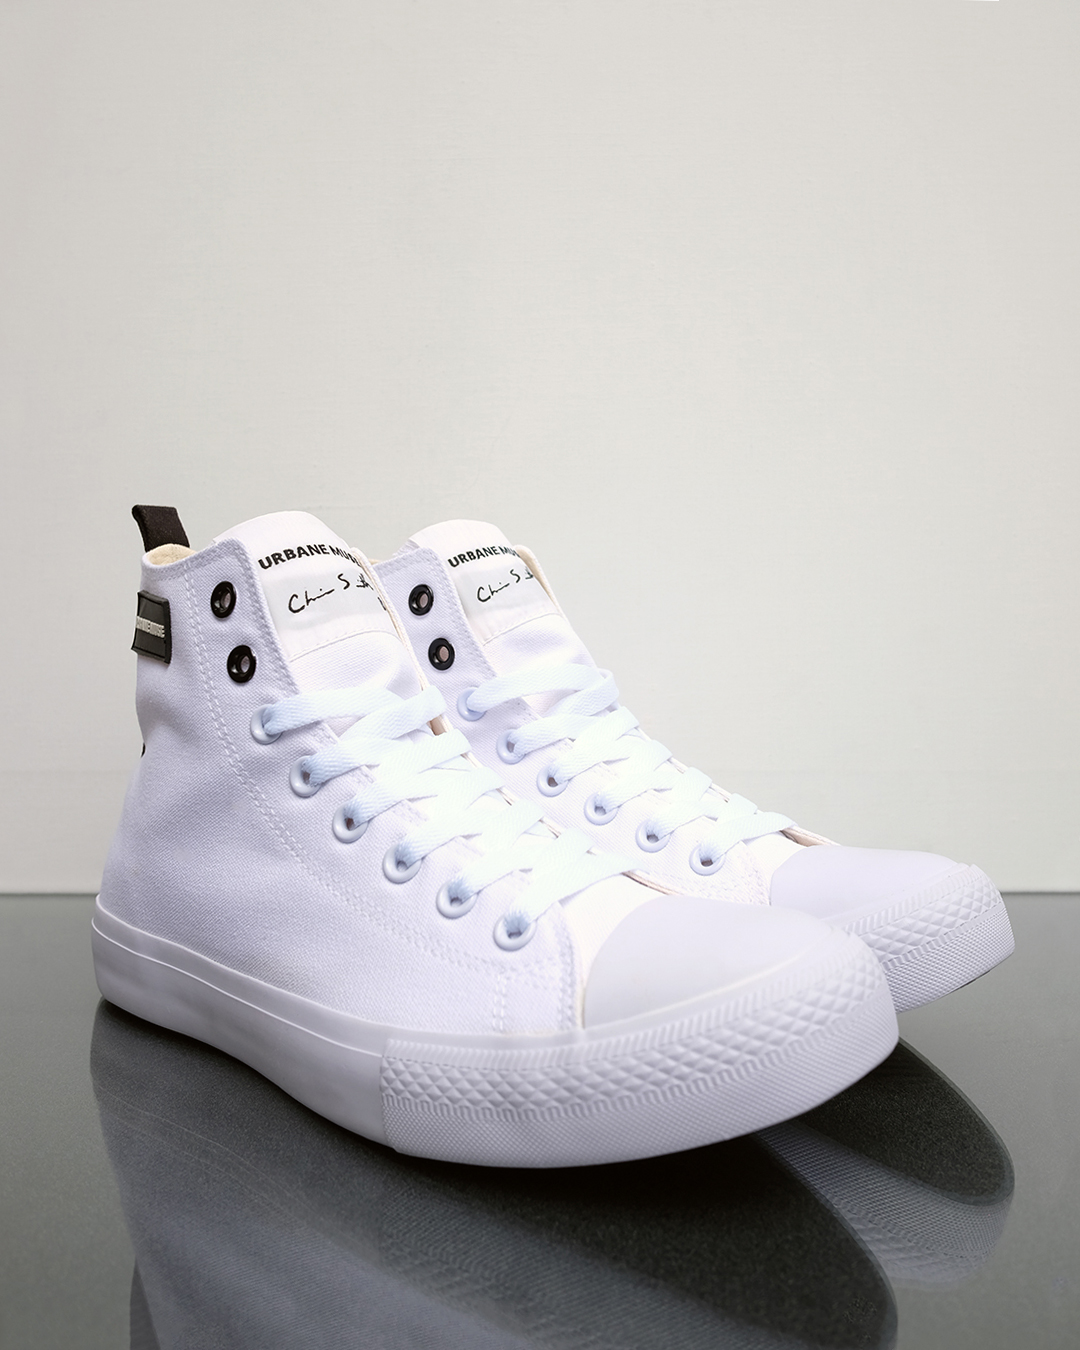 photo-2c-CANVAS-HIGH-TOP-URBANE-MUSE-CHRIS-SMITH-SNEAKERS